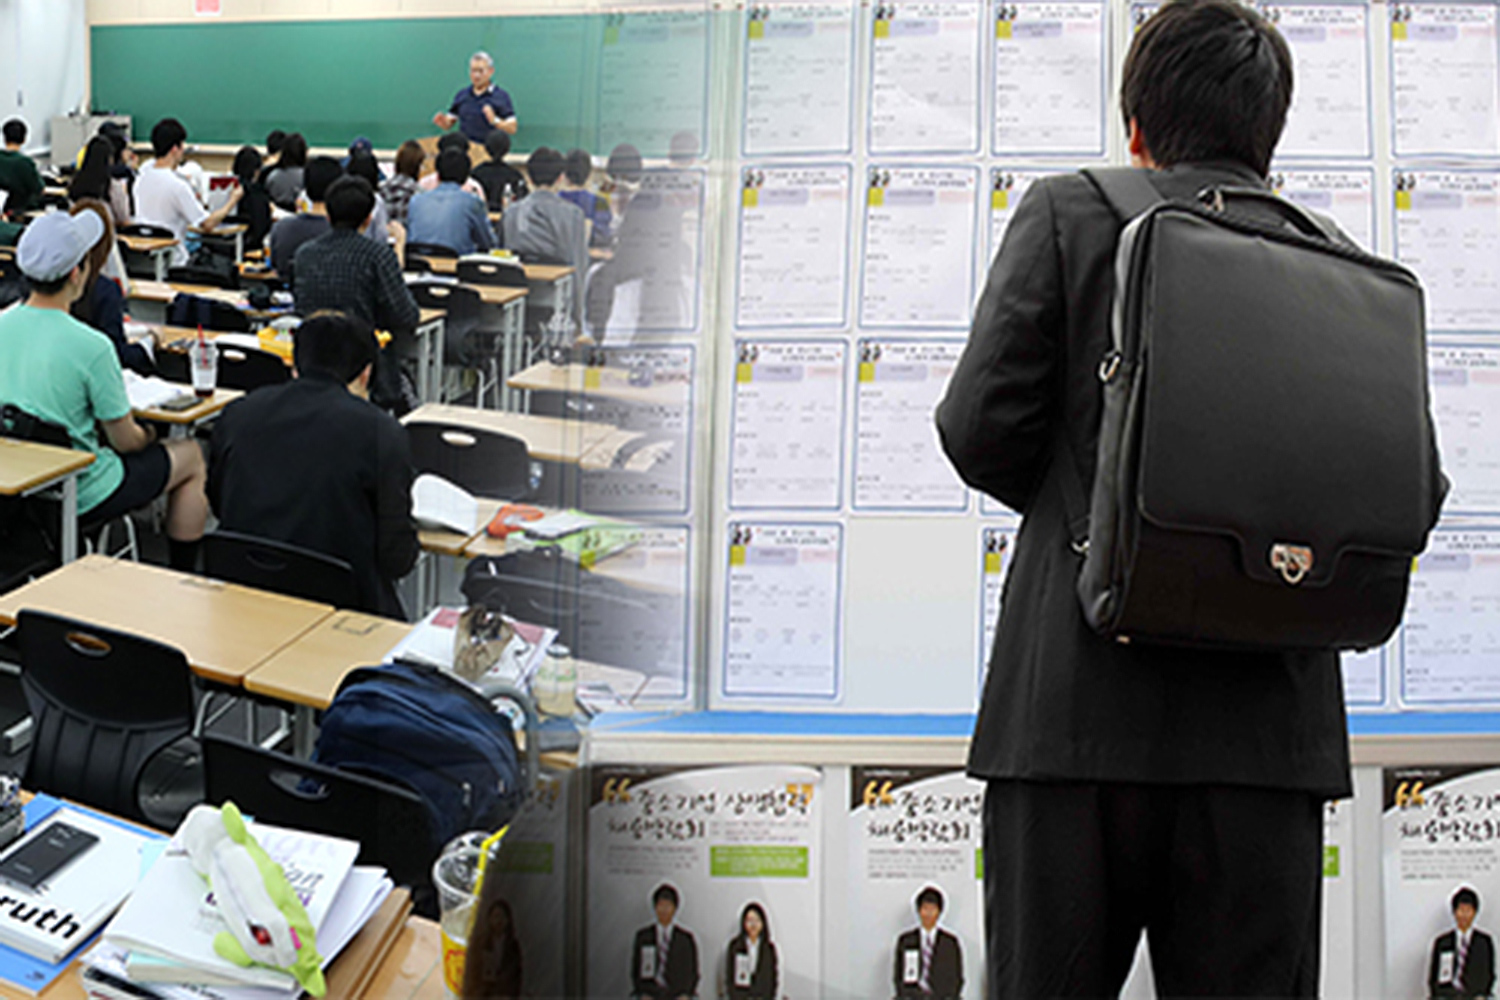 Four out of 10 Korean college students seek private tutoring to land jobs